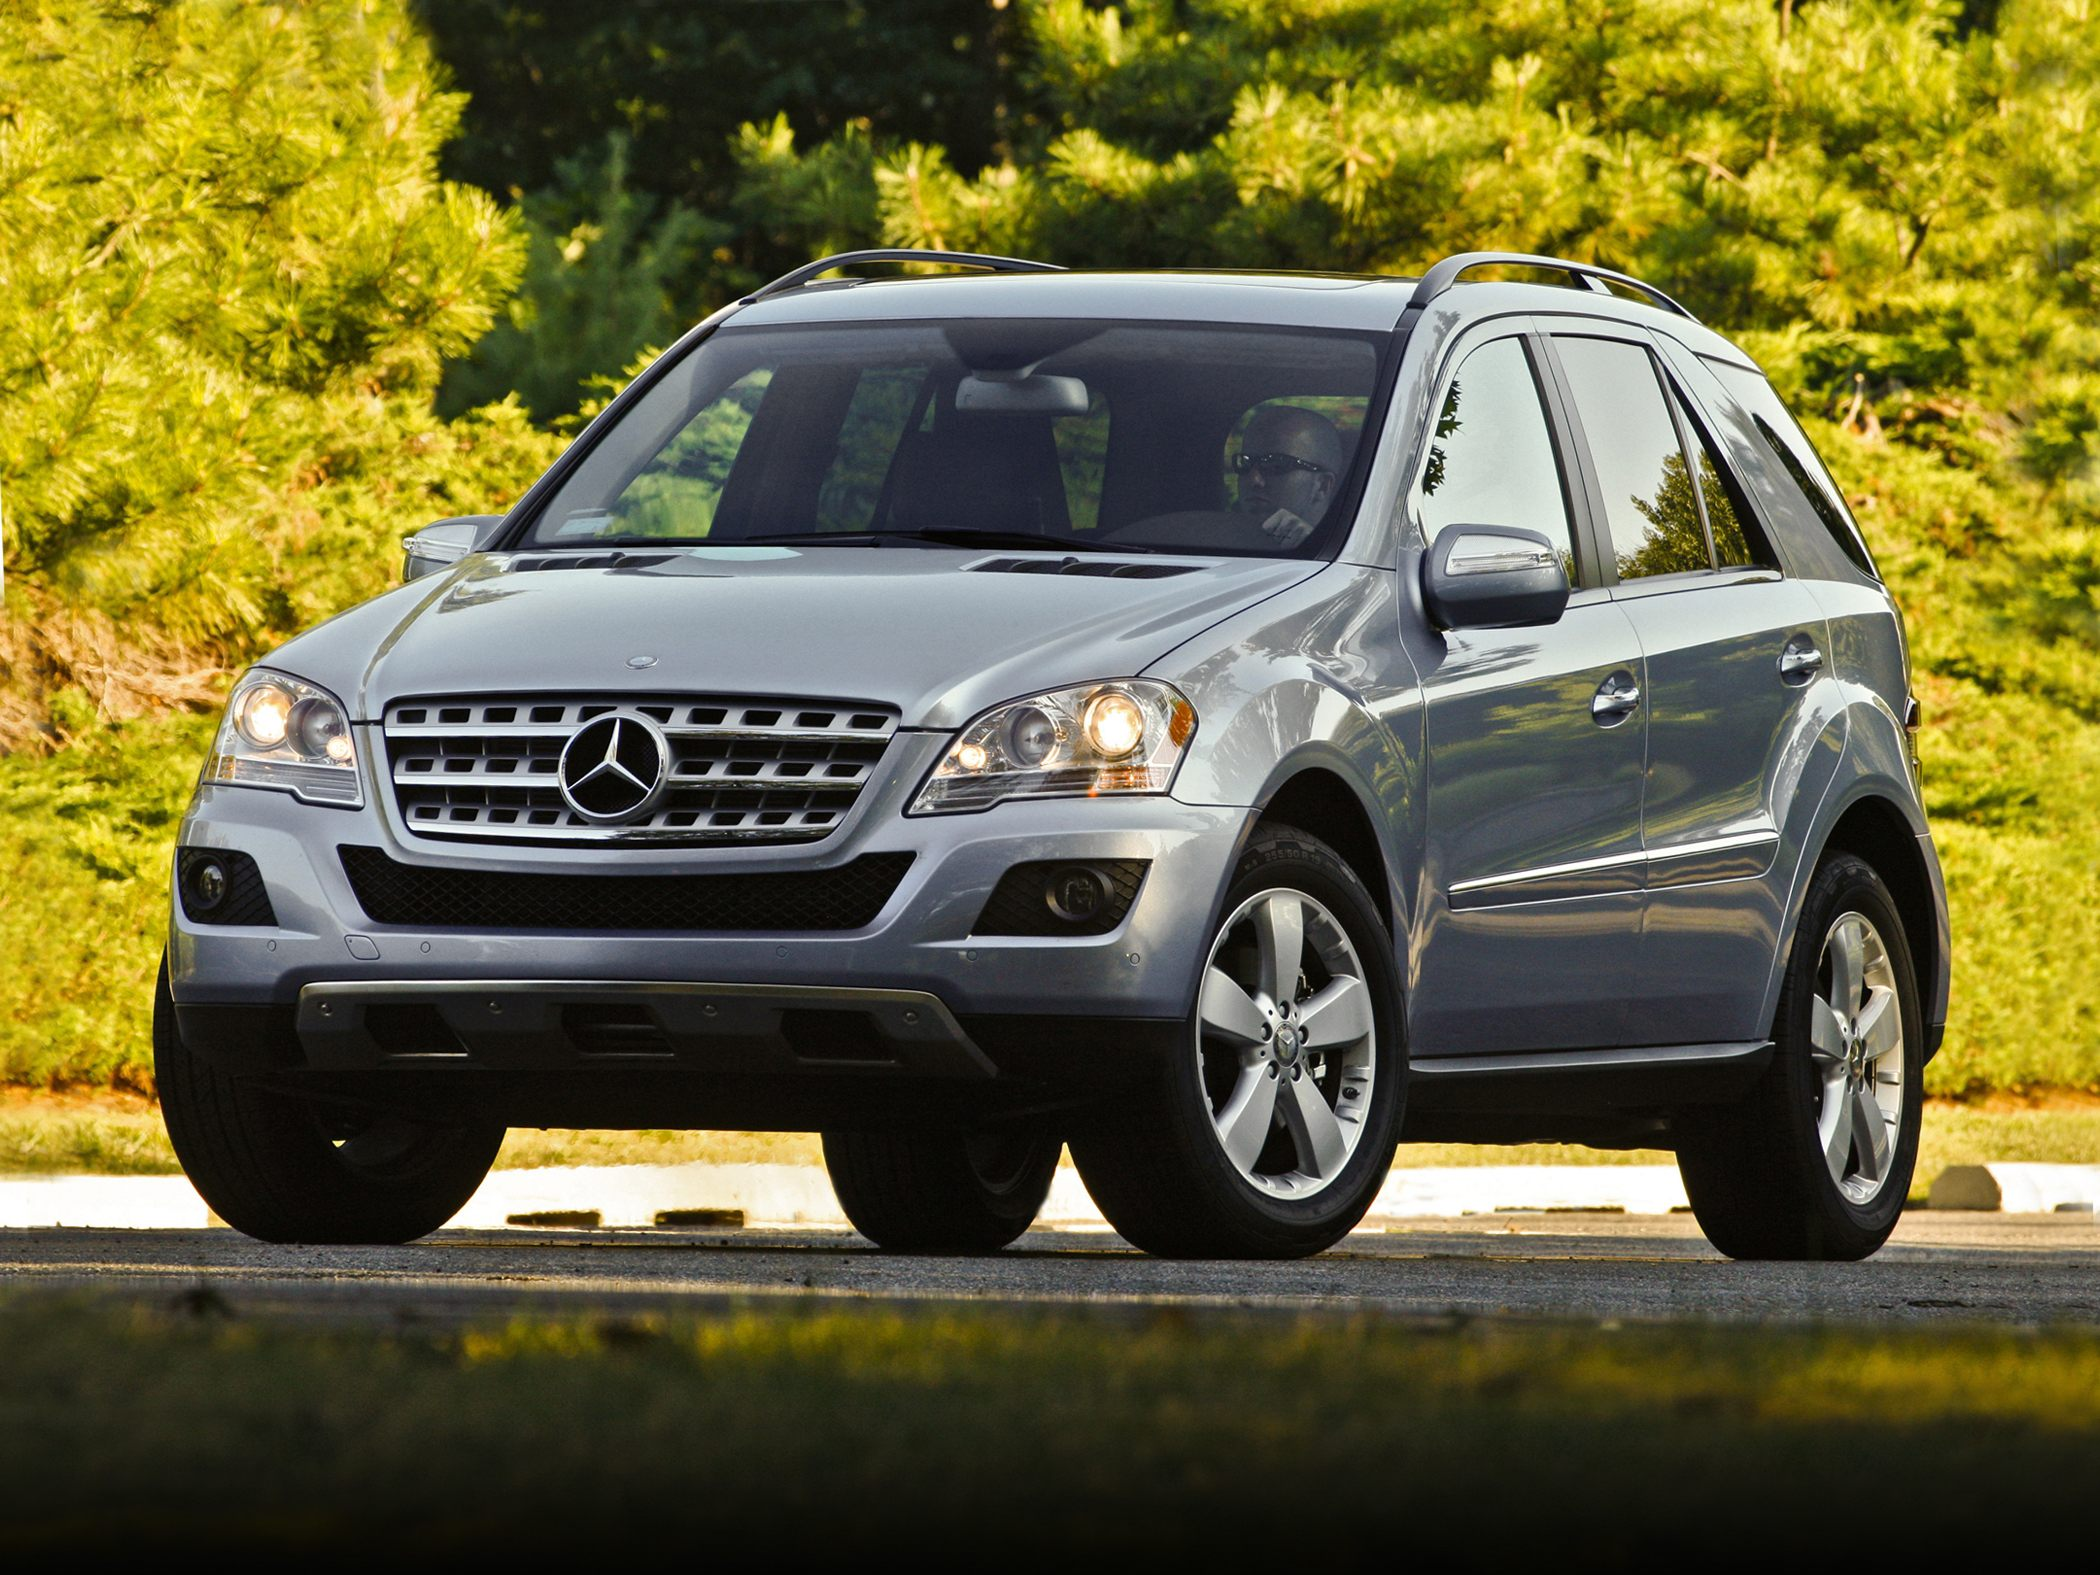 2010 mercedes benz m class information and photos for Pictures of mercedes benz suv